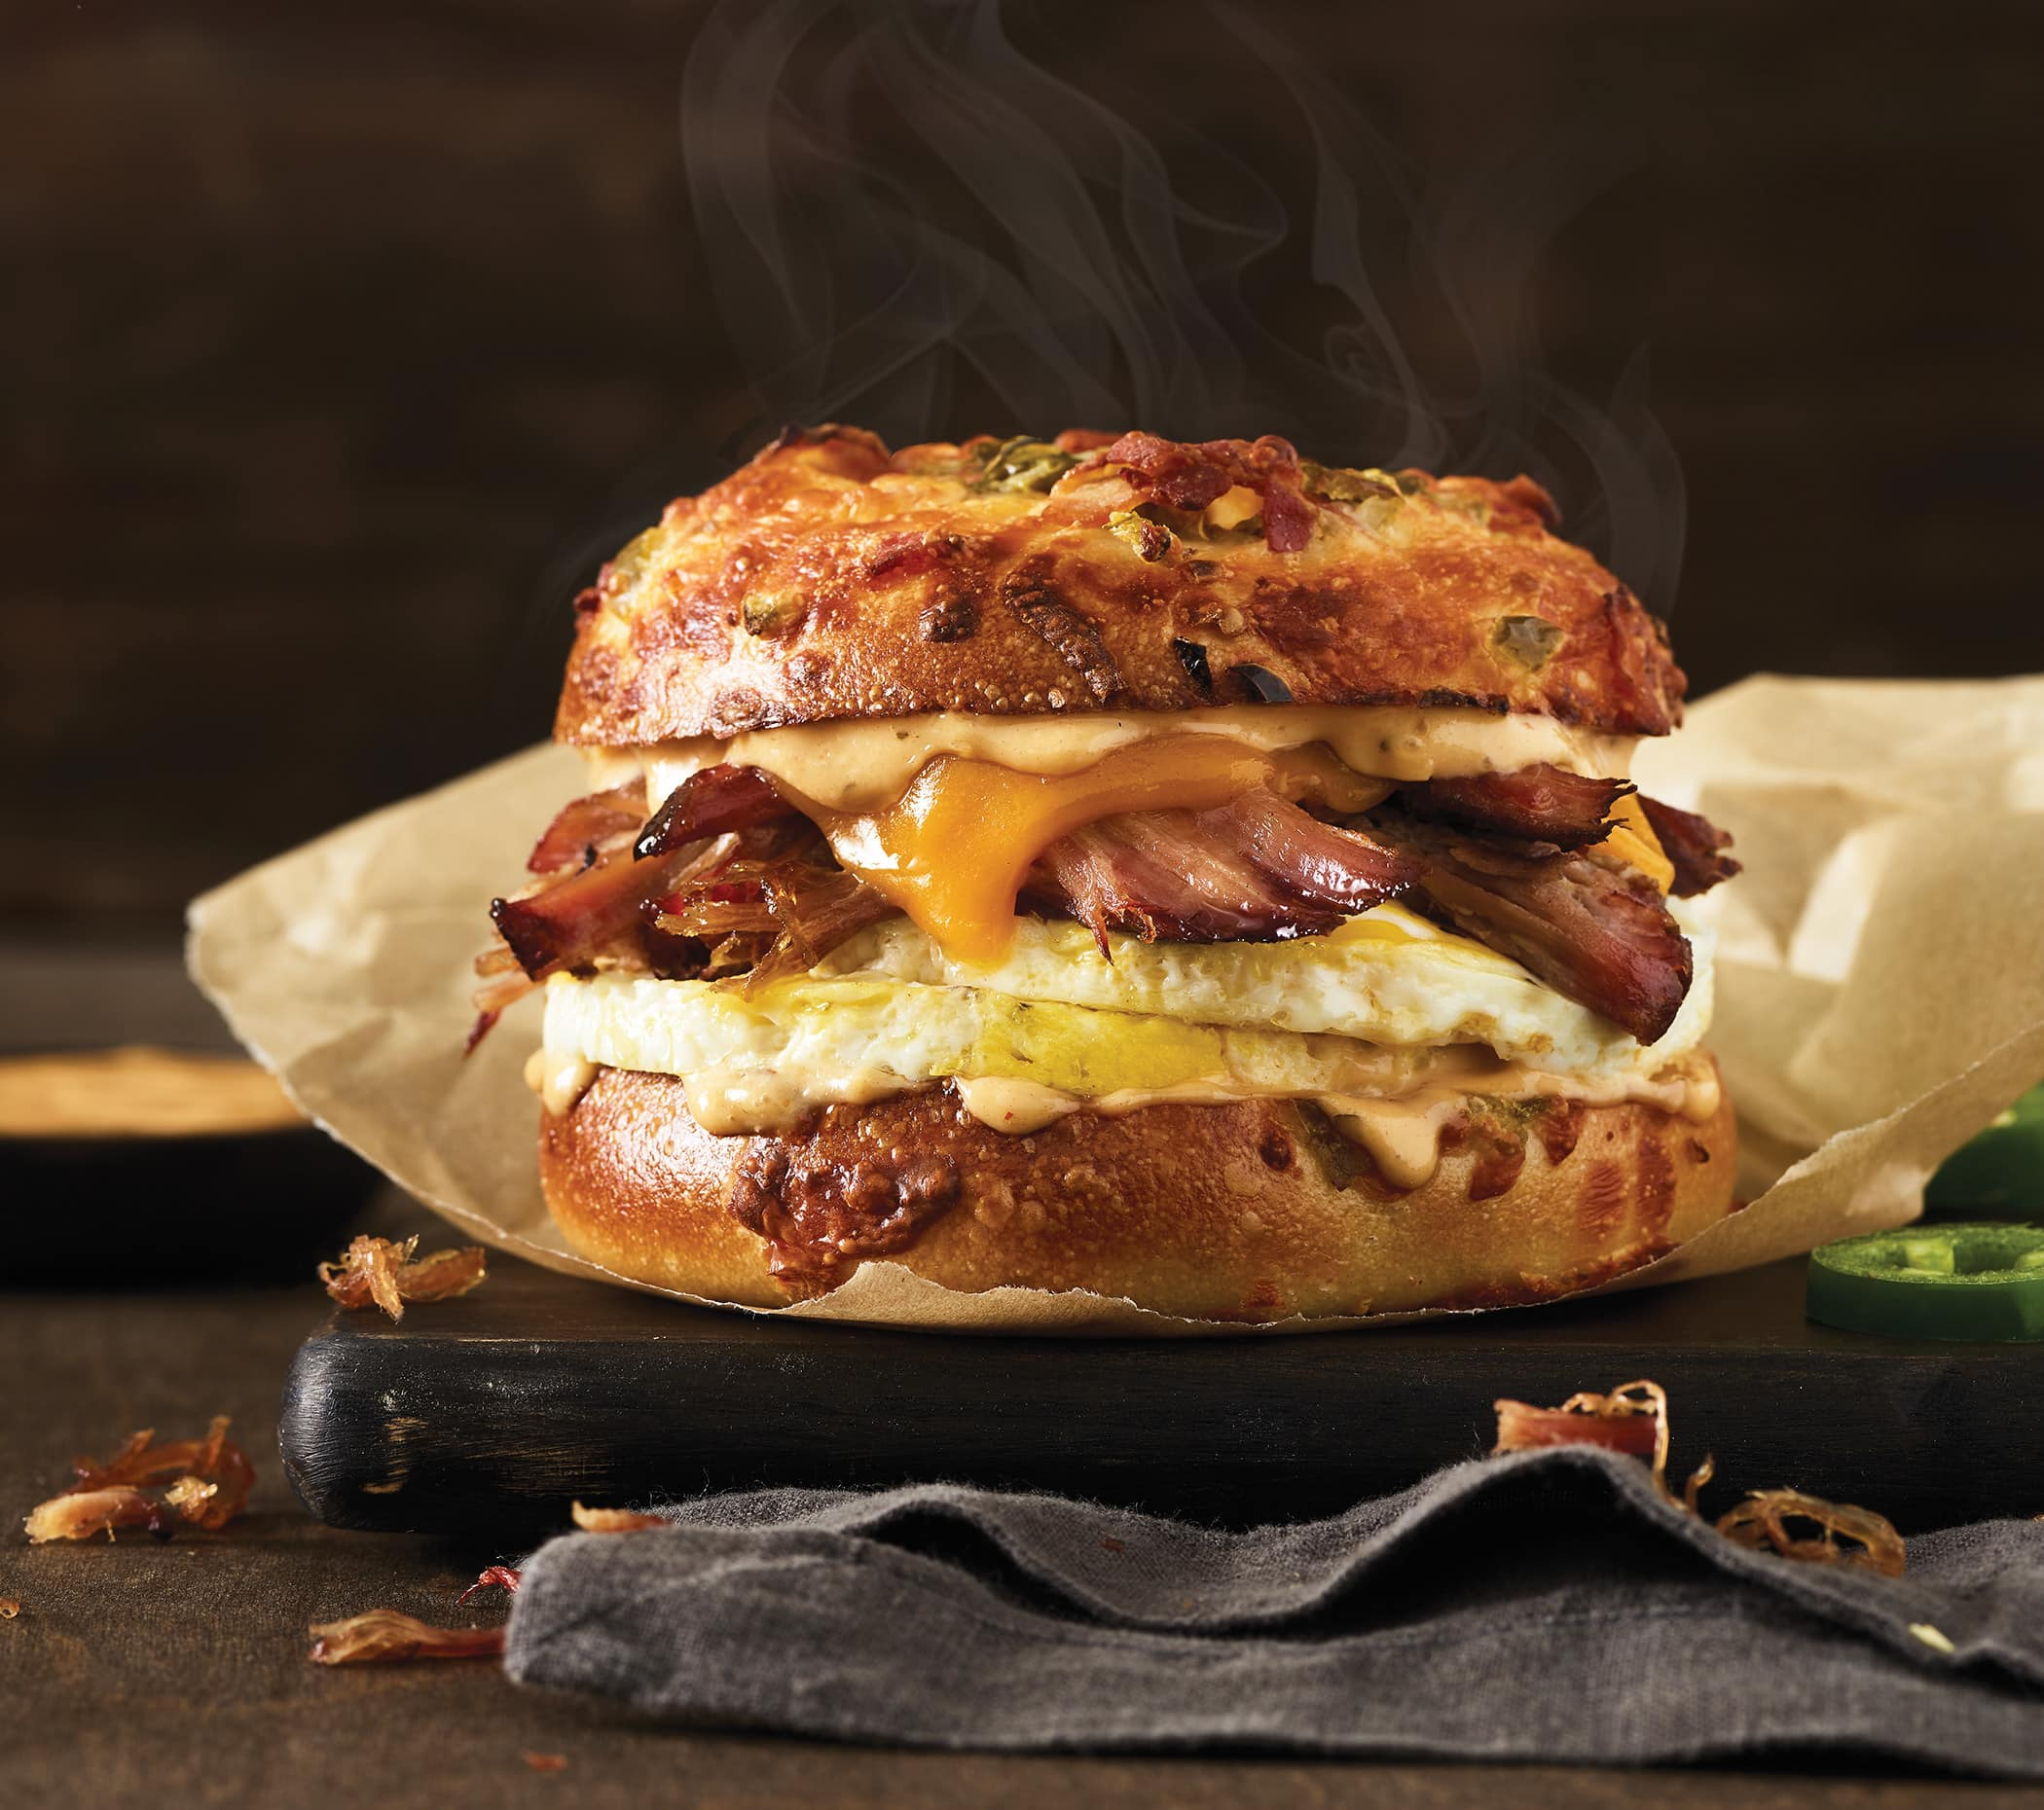 Now at Einstein Bros. Bagels - Brisket is for Breakfast